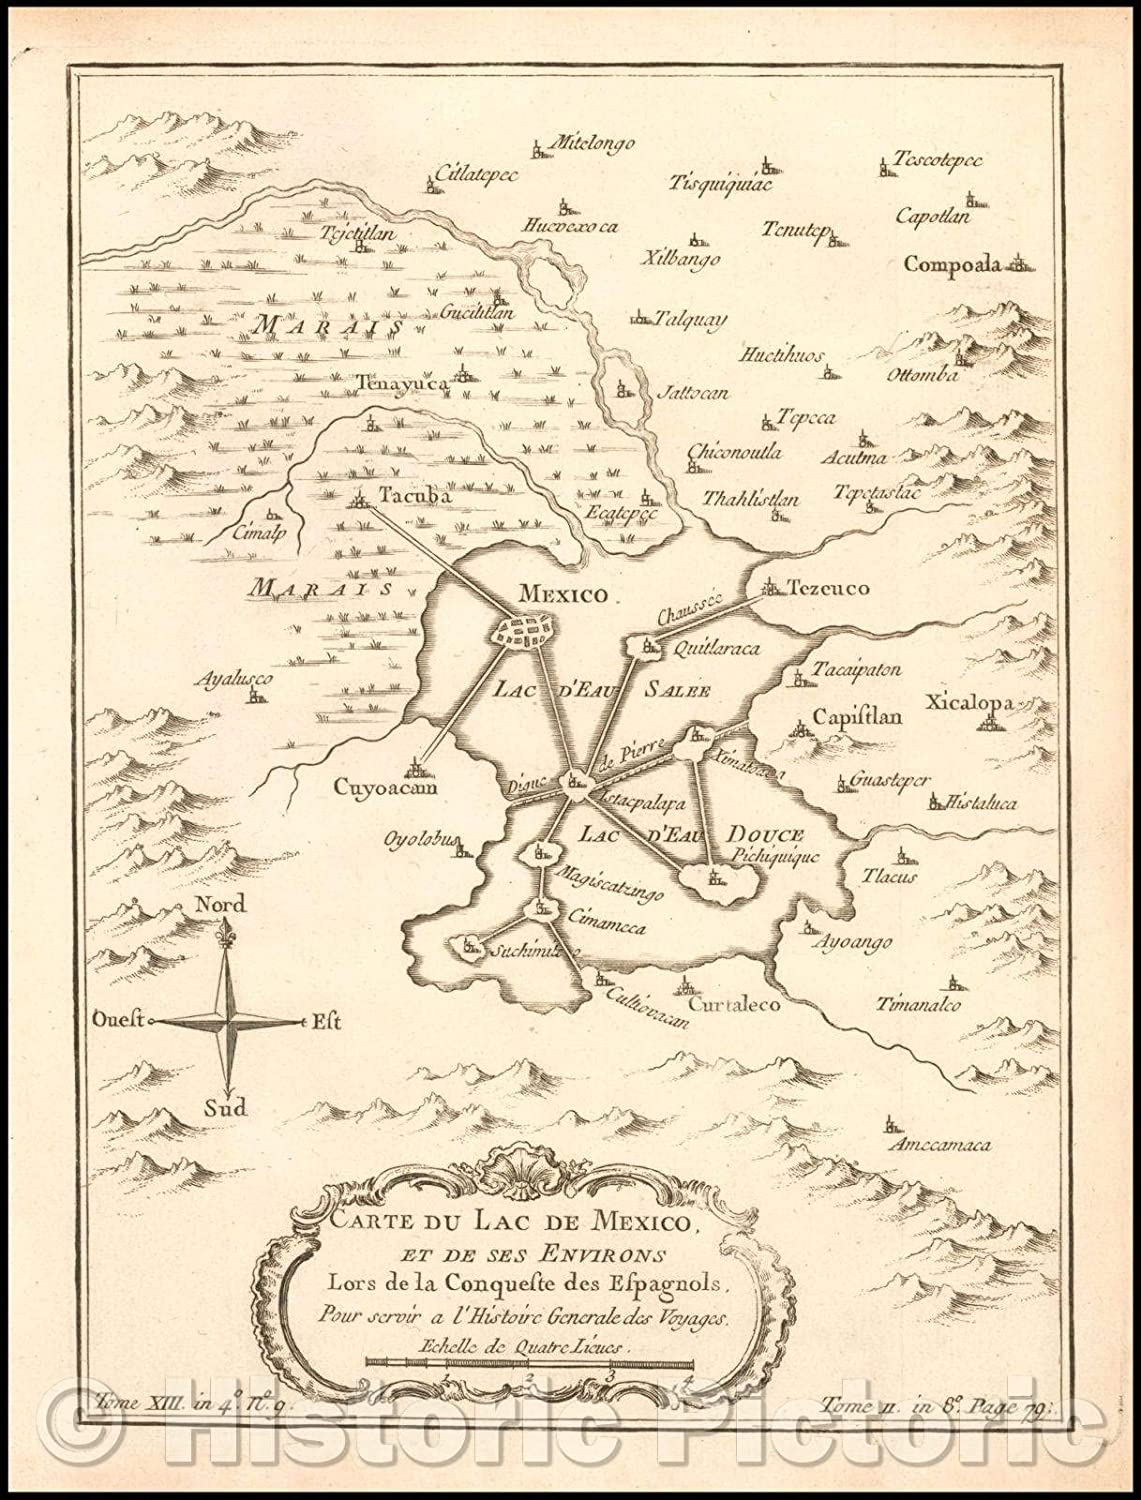 Amazon.com: Historic Map   Carte du Lac De Mexico, et de ses ... on a map of latin america, a map of roatan, a map of havana, a map of tamaulipas, a map of los cabos, a map of the southwest, a map of portland, a map of algiers, a map of popocatepetl, a map of milan, a map of rio de janeiro, a map of nassau, a map of zona rosa, a map of caracas, a map of everglades national park, a map of montevideo, a map of sinaloa, a map of the holy land, a map of budapest, a map of harare,